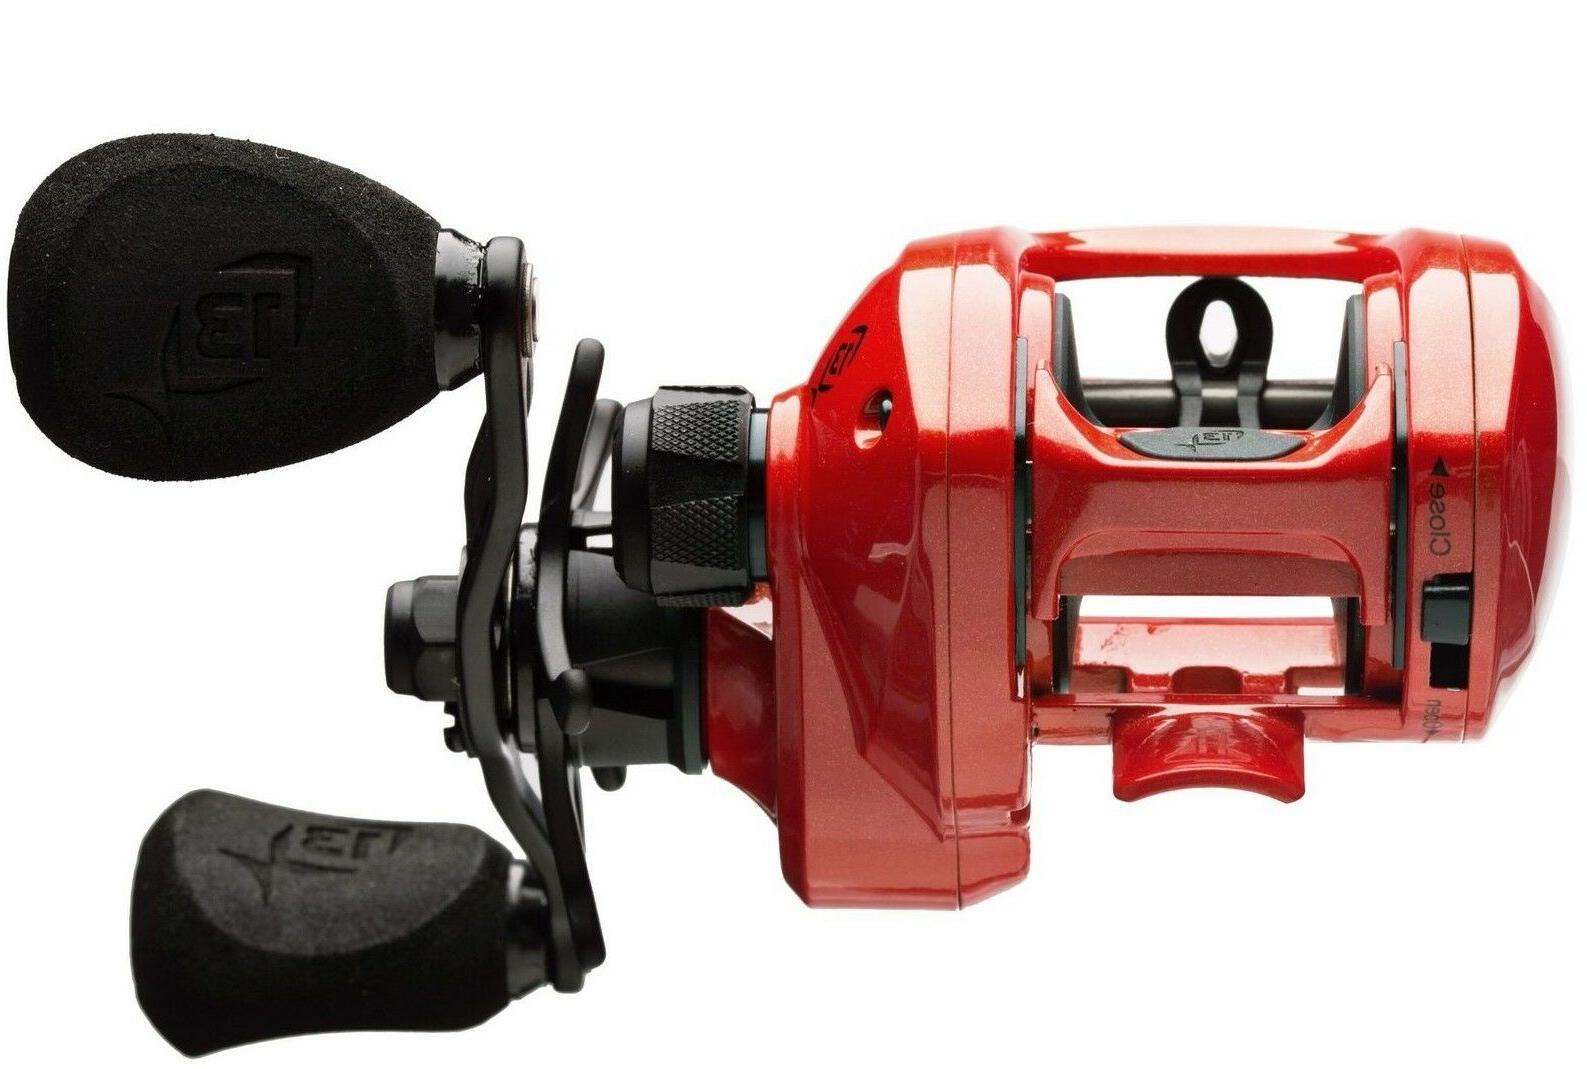 13 Fishing Concept Baitcasting Reels or Ratio FREE